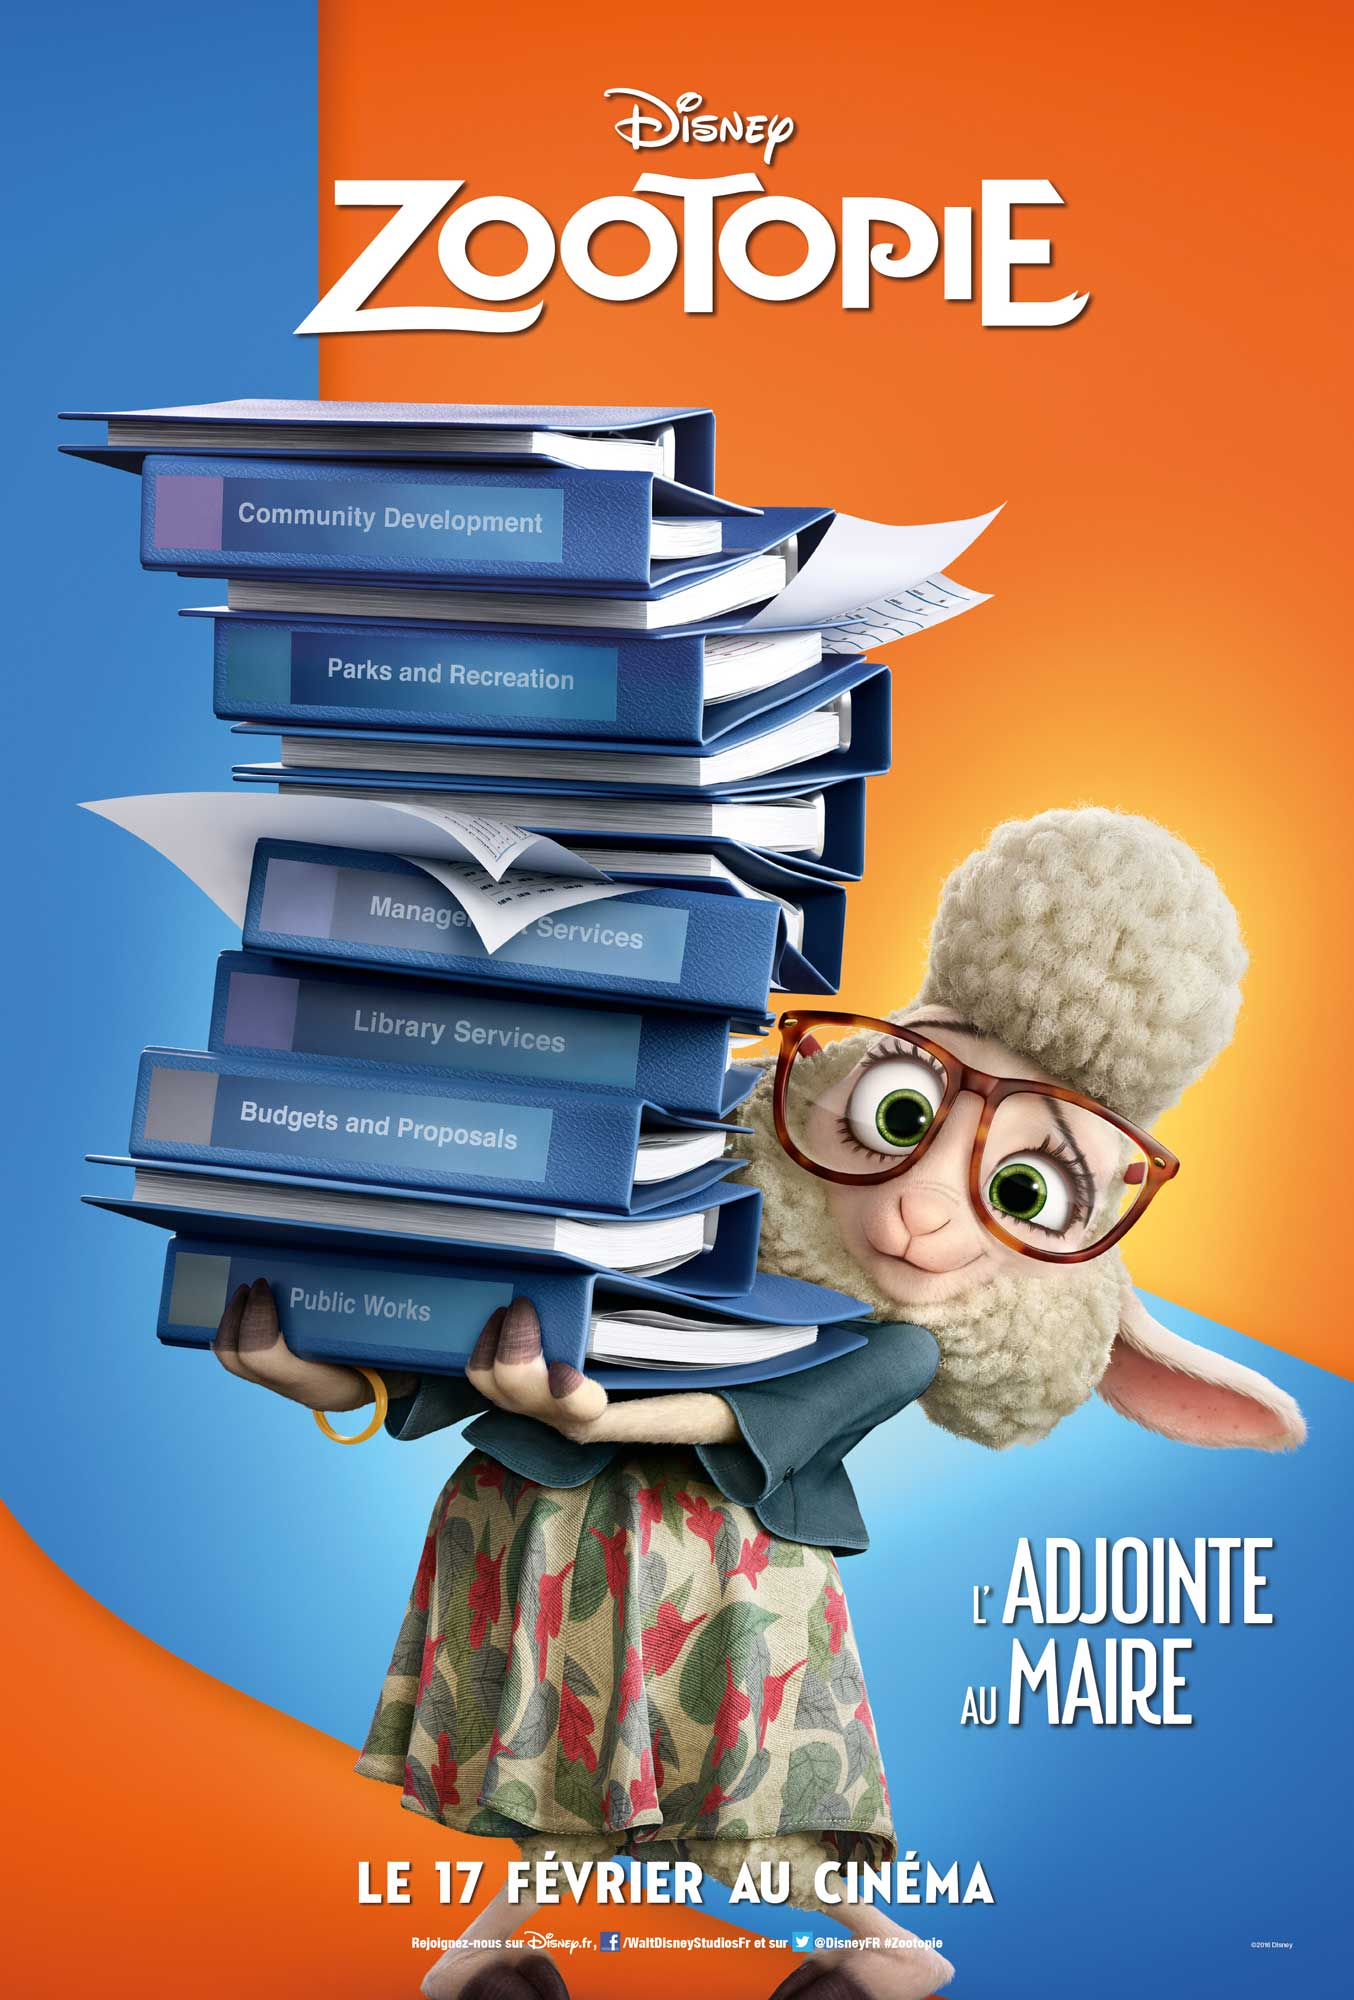 disney affiche poster zootopie zootopia personnage character